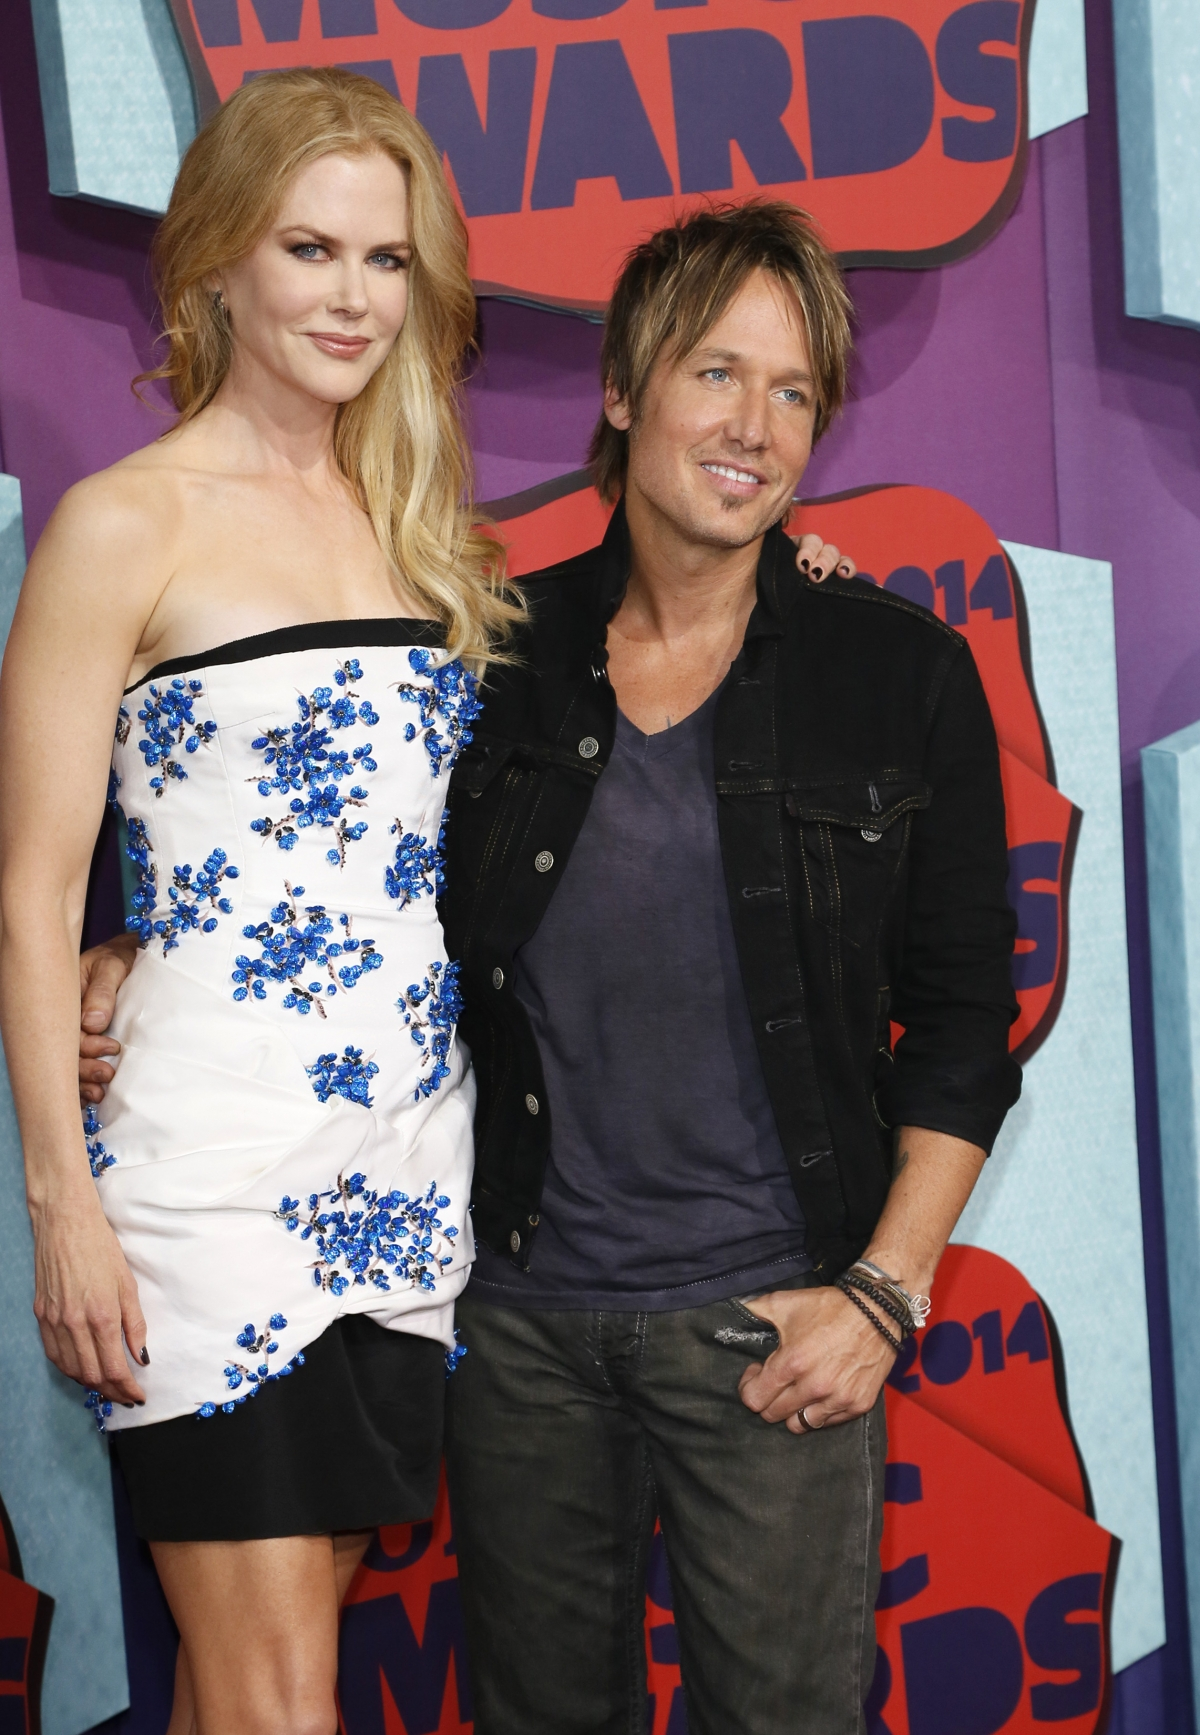 Actress Nicole Kidman and her husband, musician Keith Urban, arrive at the 2014 CMT Music Awards in Nashville, Tennessee.